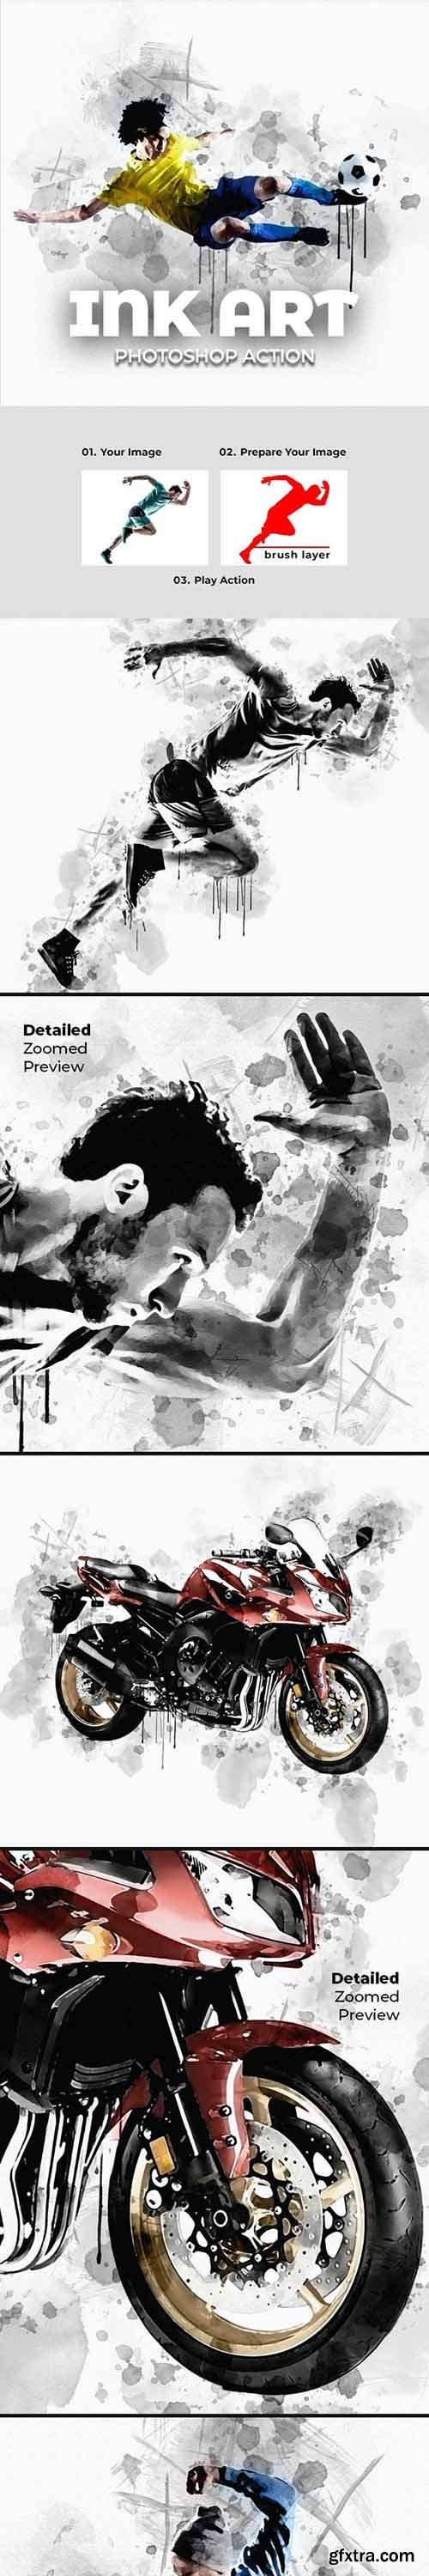 GraphicRiver - Ink Art Photoshop Action 28285461